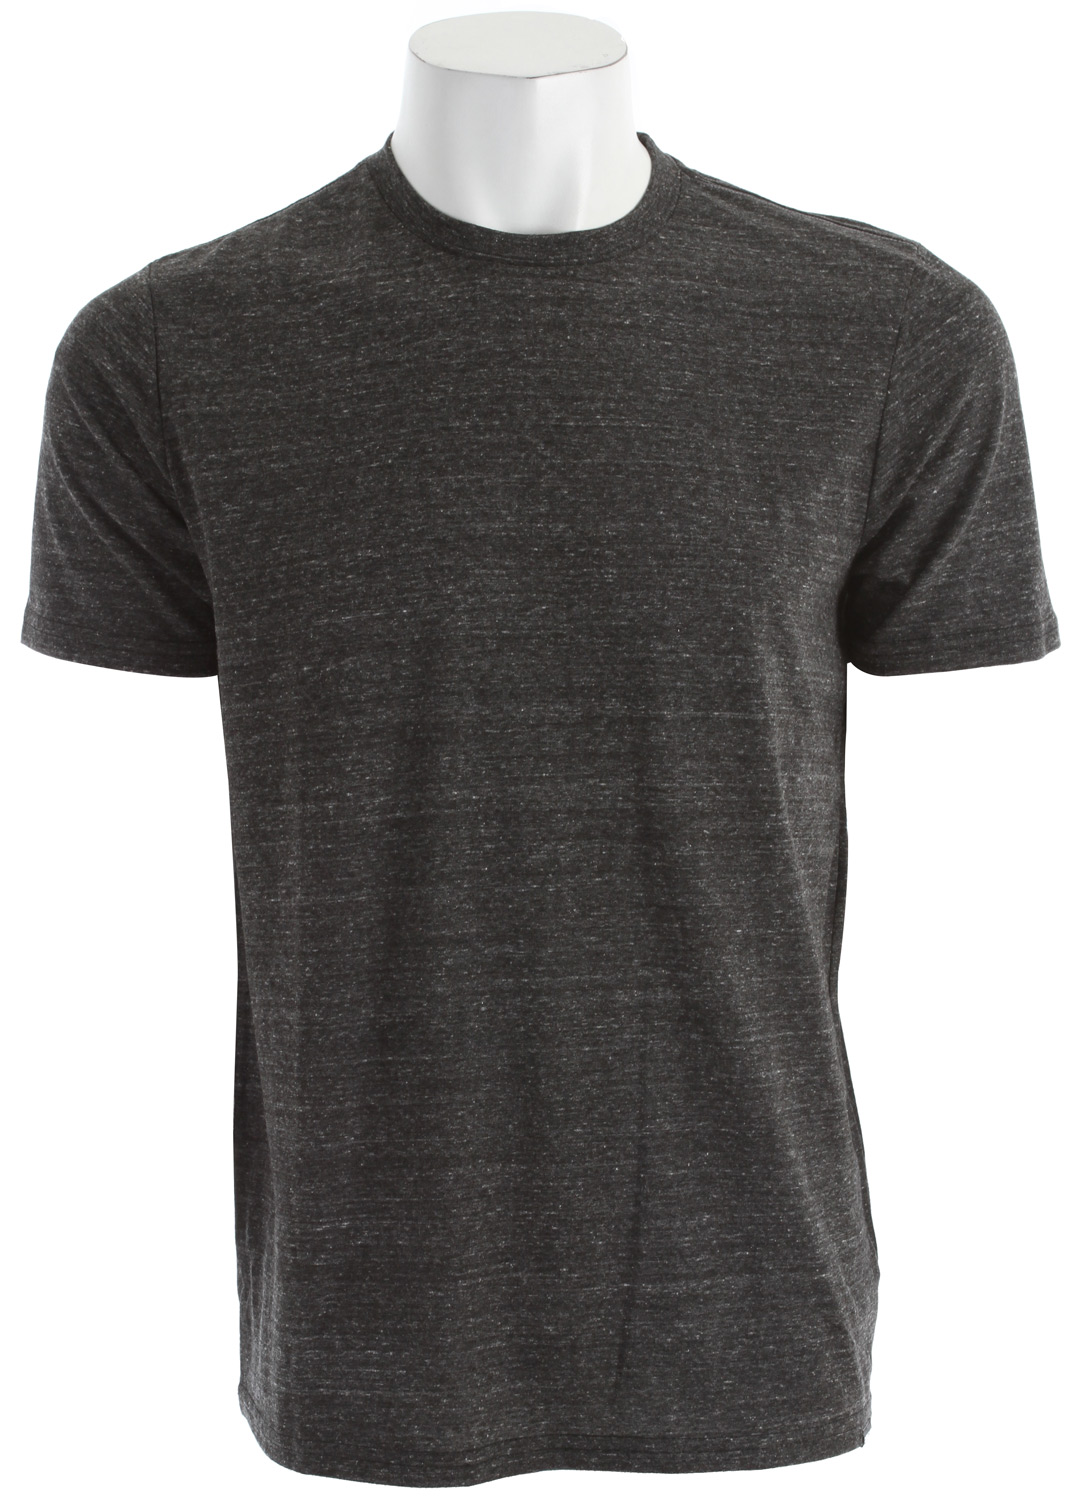 Surf Key Features of The Quiksilver Blank Premium Heather T-Shirt: Premium T-Shirt Crew Neck Short Sleeve triblend jersey crew 50% polyester, 38% cotton, 12% rayon - $22.00